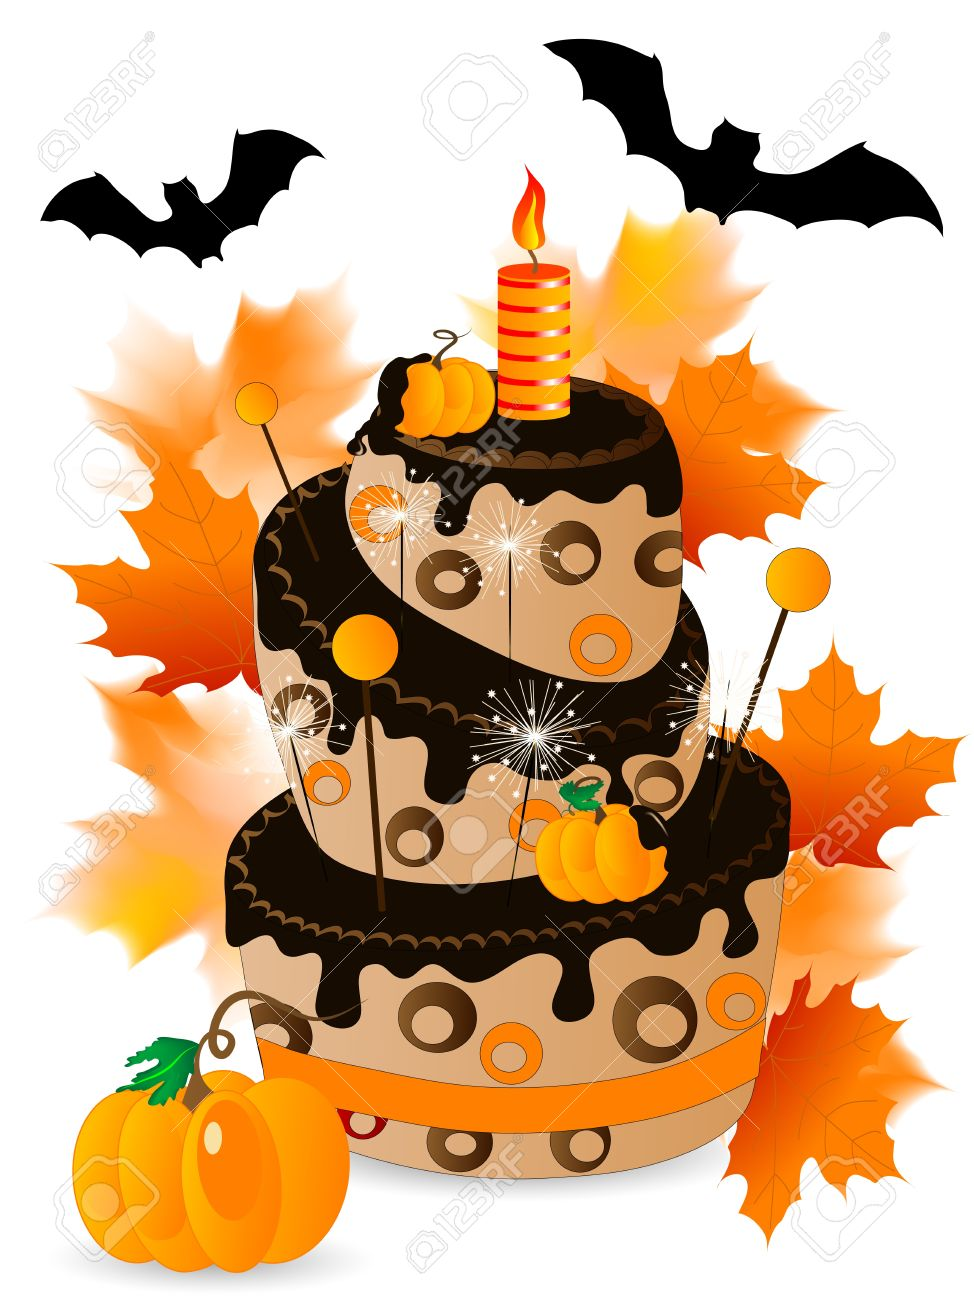 Halloween cake with chocolate, .